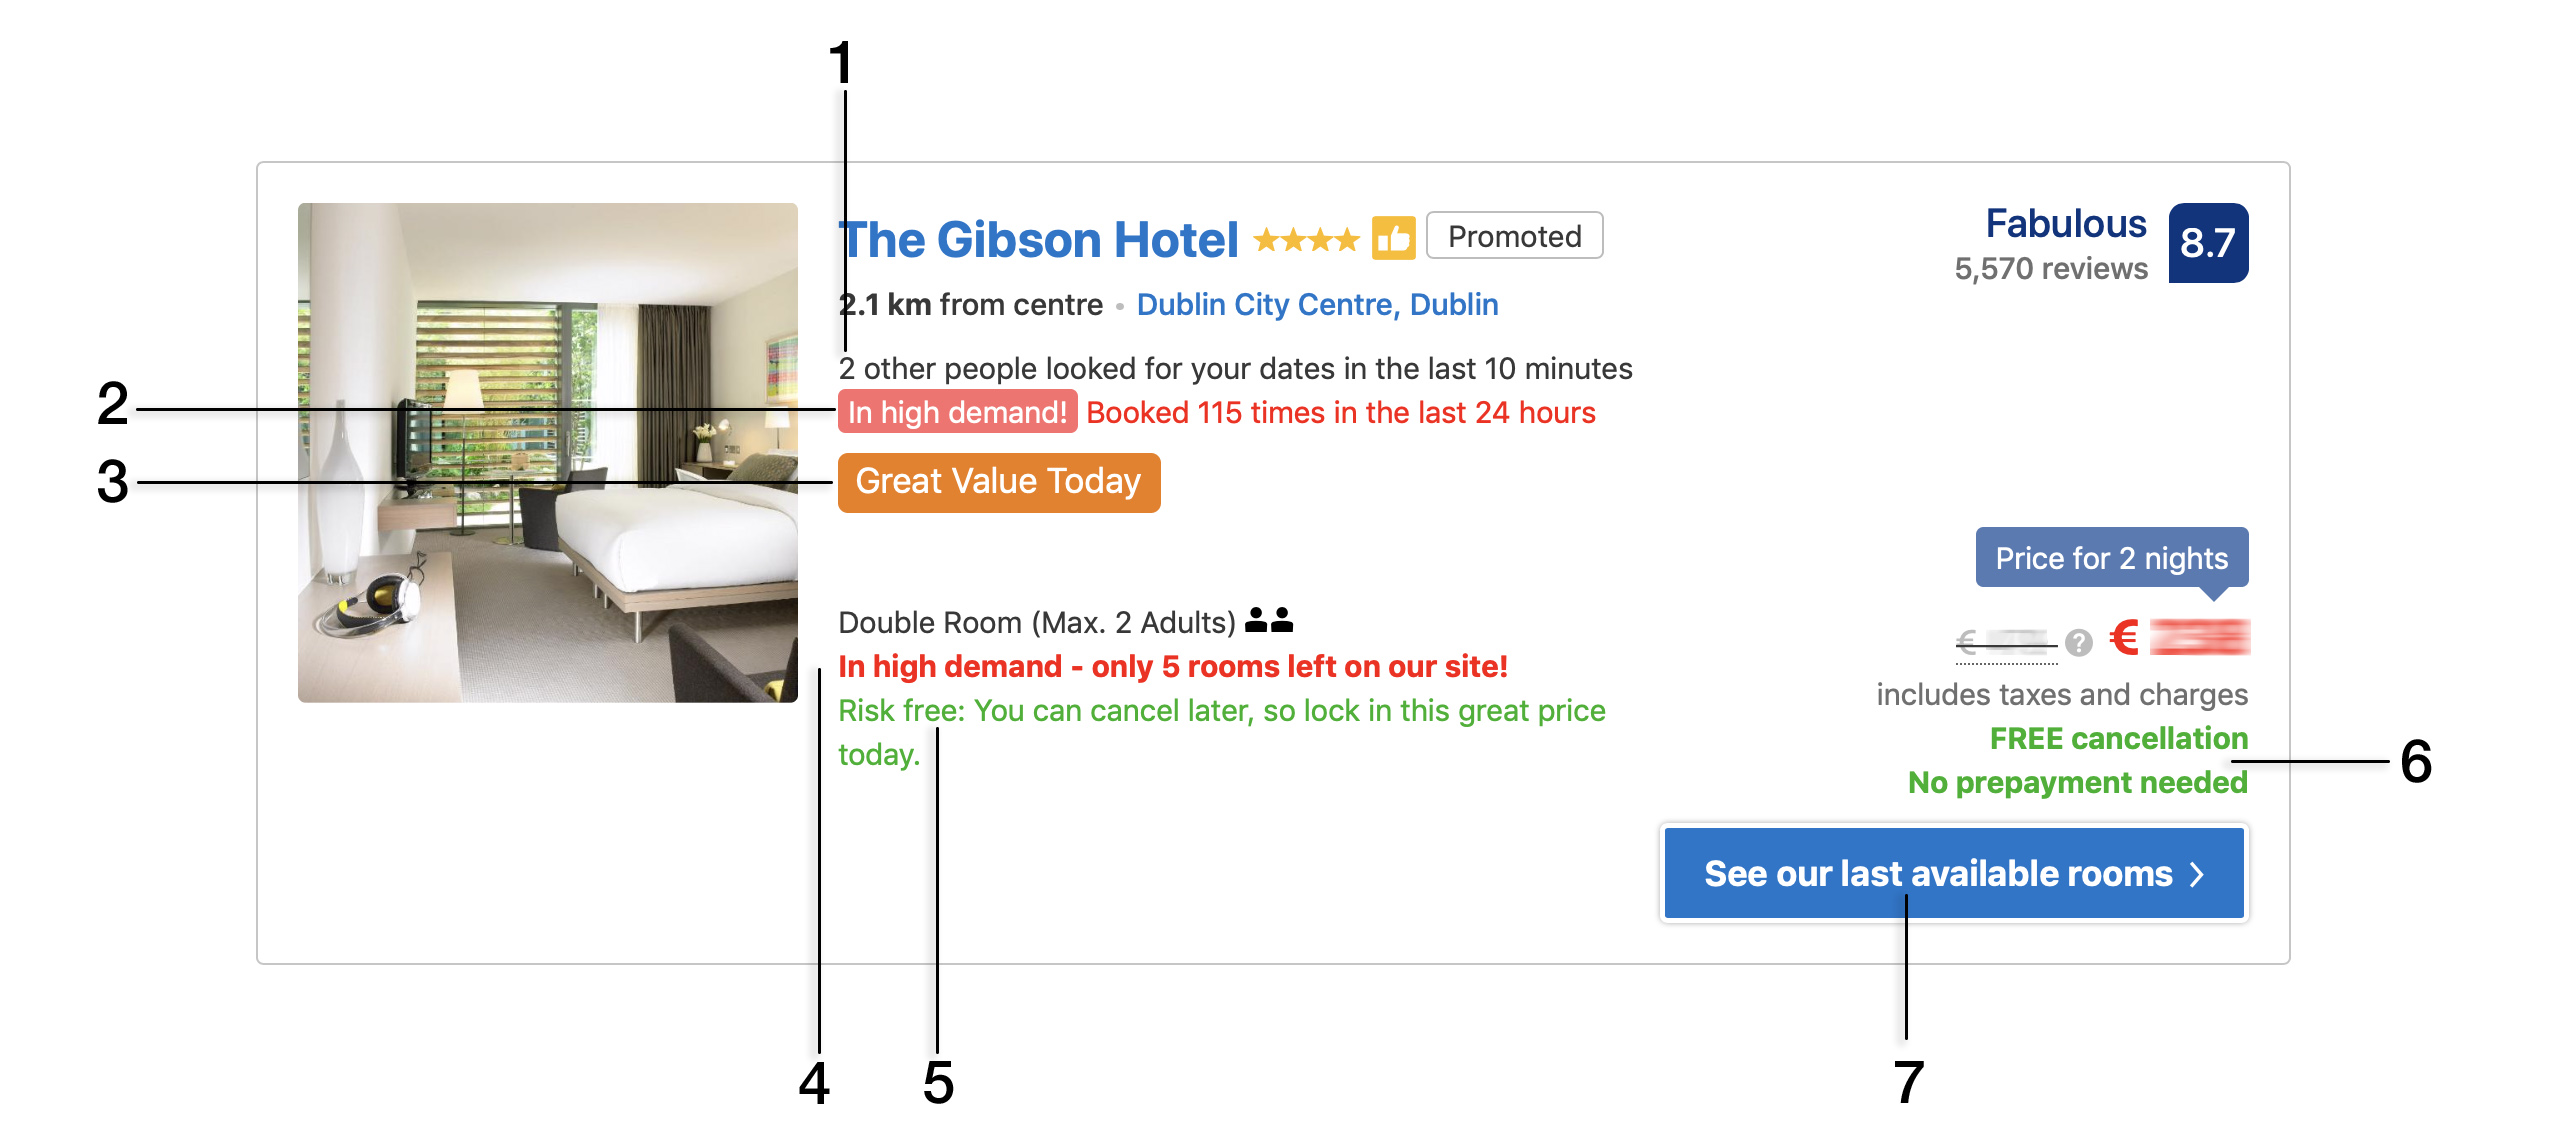 "Figure 1: OTAs using pressure-selling tactics in their listings. In this case, at least 7 examples of pushing for early booking, including phrases such as ""see our last available rooms"" as distinct from just ""see our rooms"", and two statements, 5 and 6, relating to free cancellations."